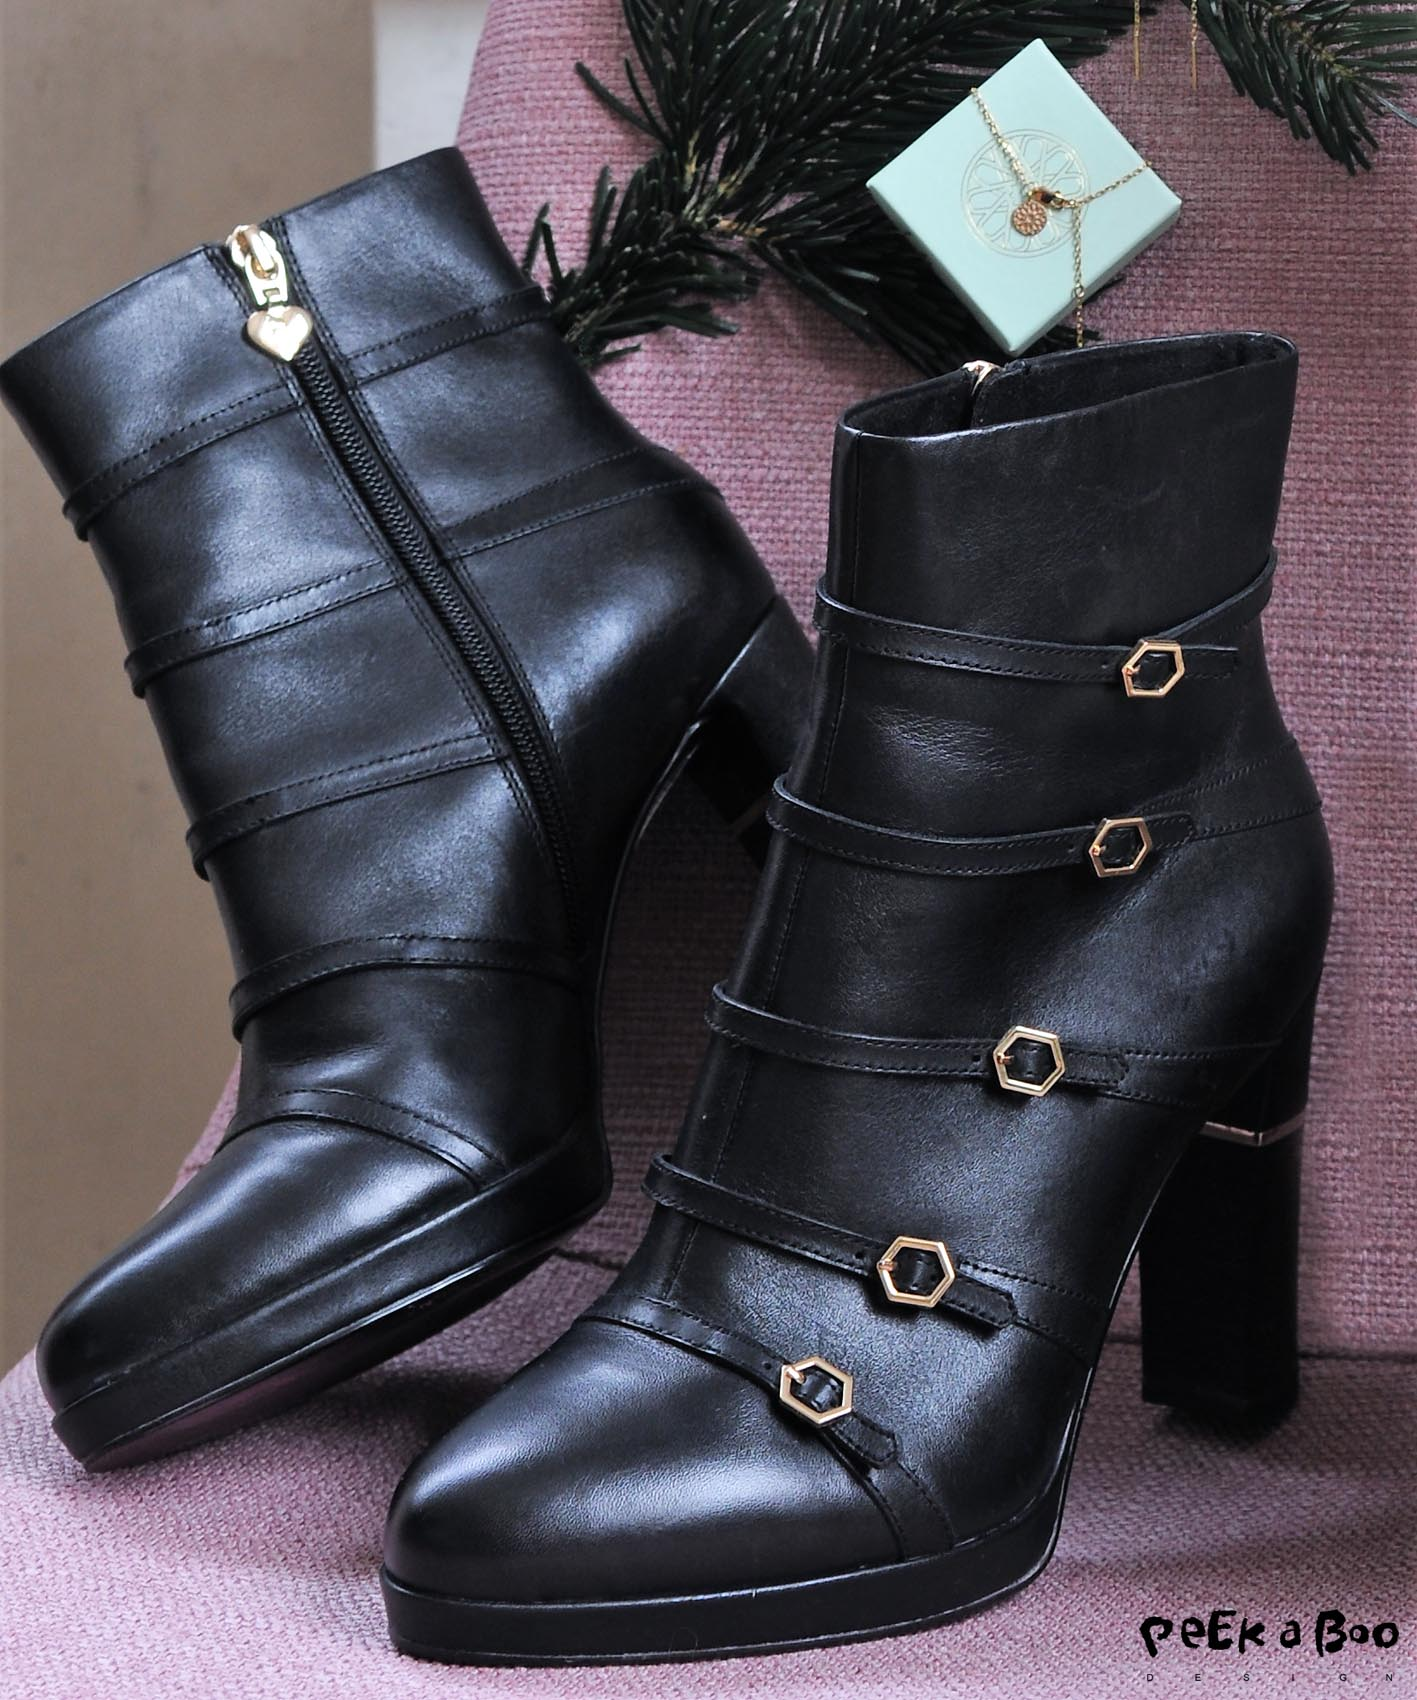 The Tamaris boots that you can be the lucky winner of this week in a size 39. They are one of my favorite shoebrands. Because they manage to be stylish and affordable at the same time.